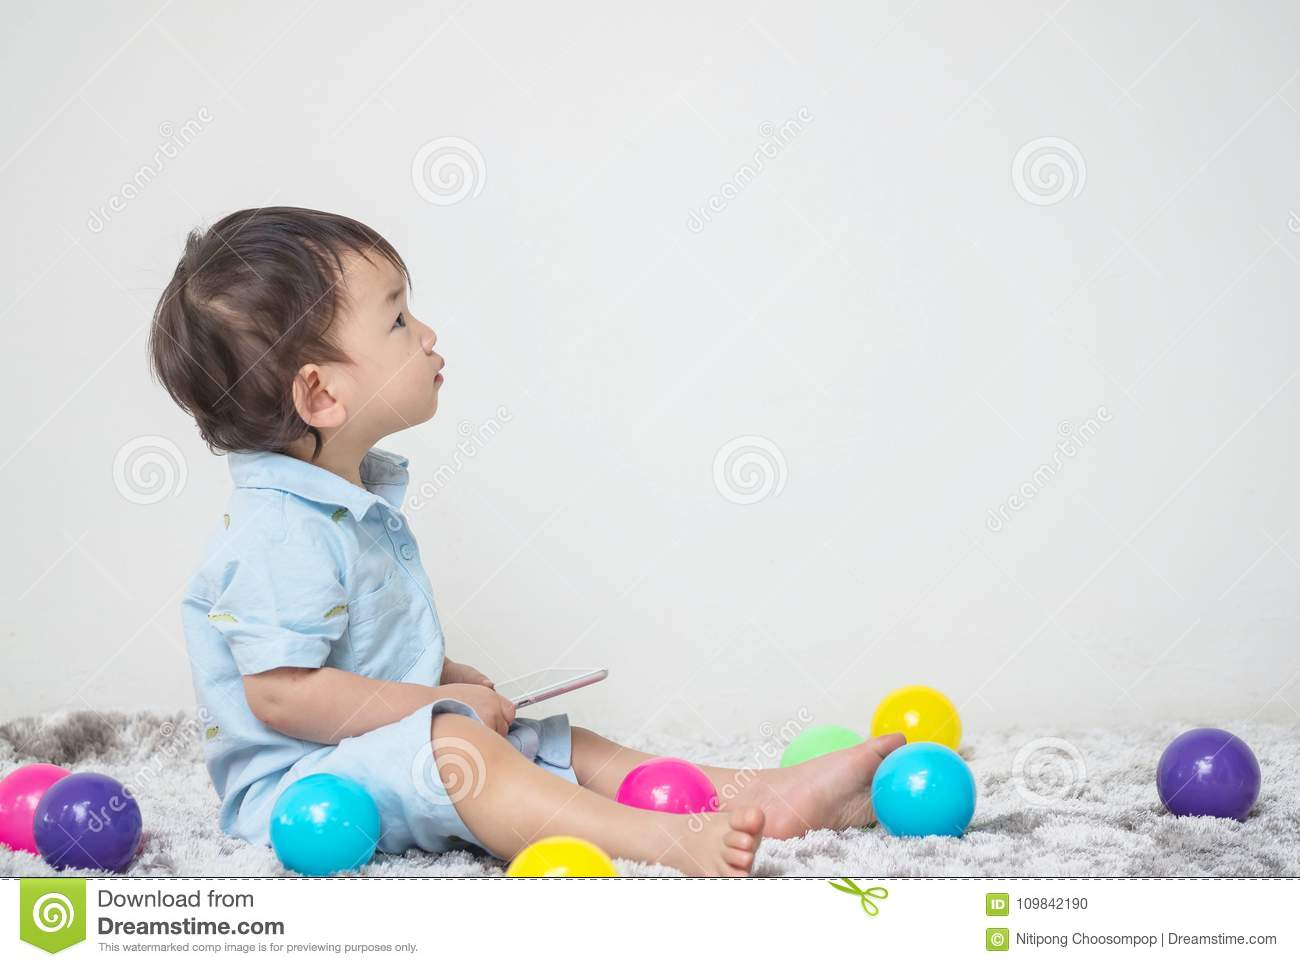 Closeup cute asian kid sitting and look at the space at white cement wall textured background on gray carpet with colorful ball